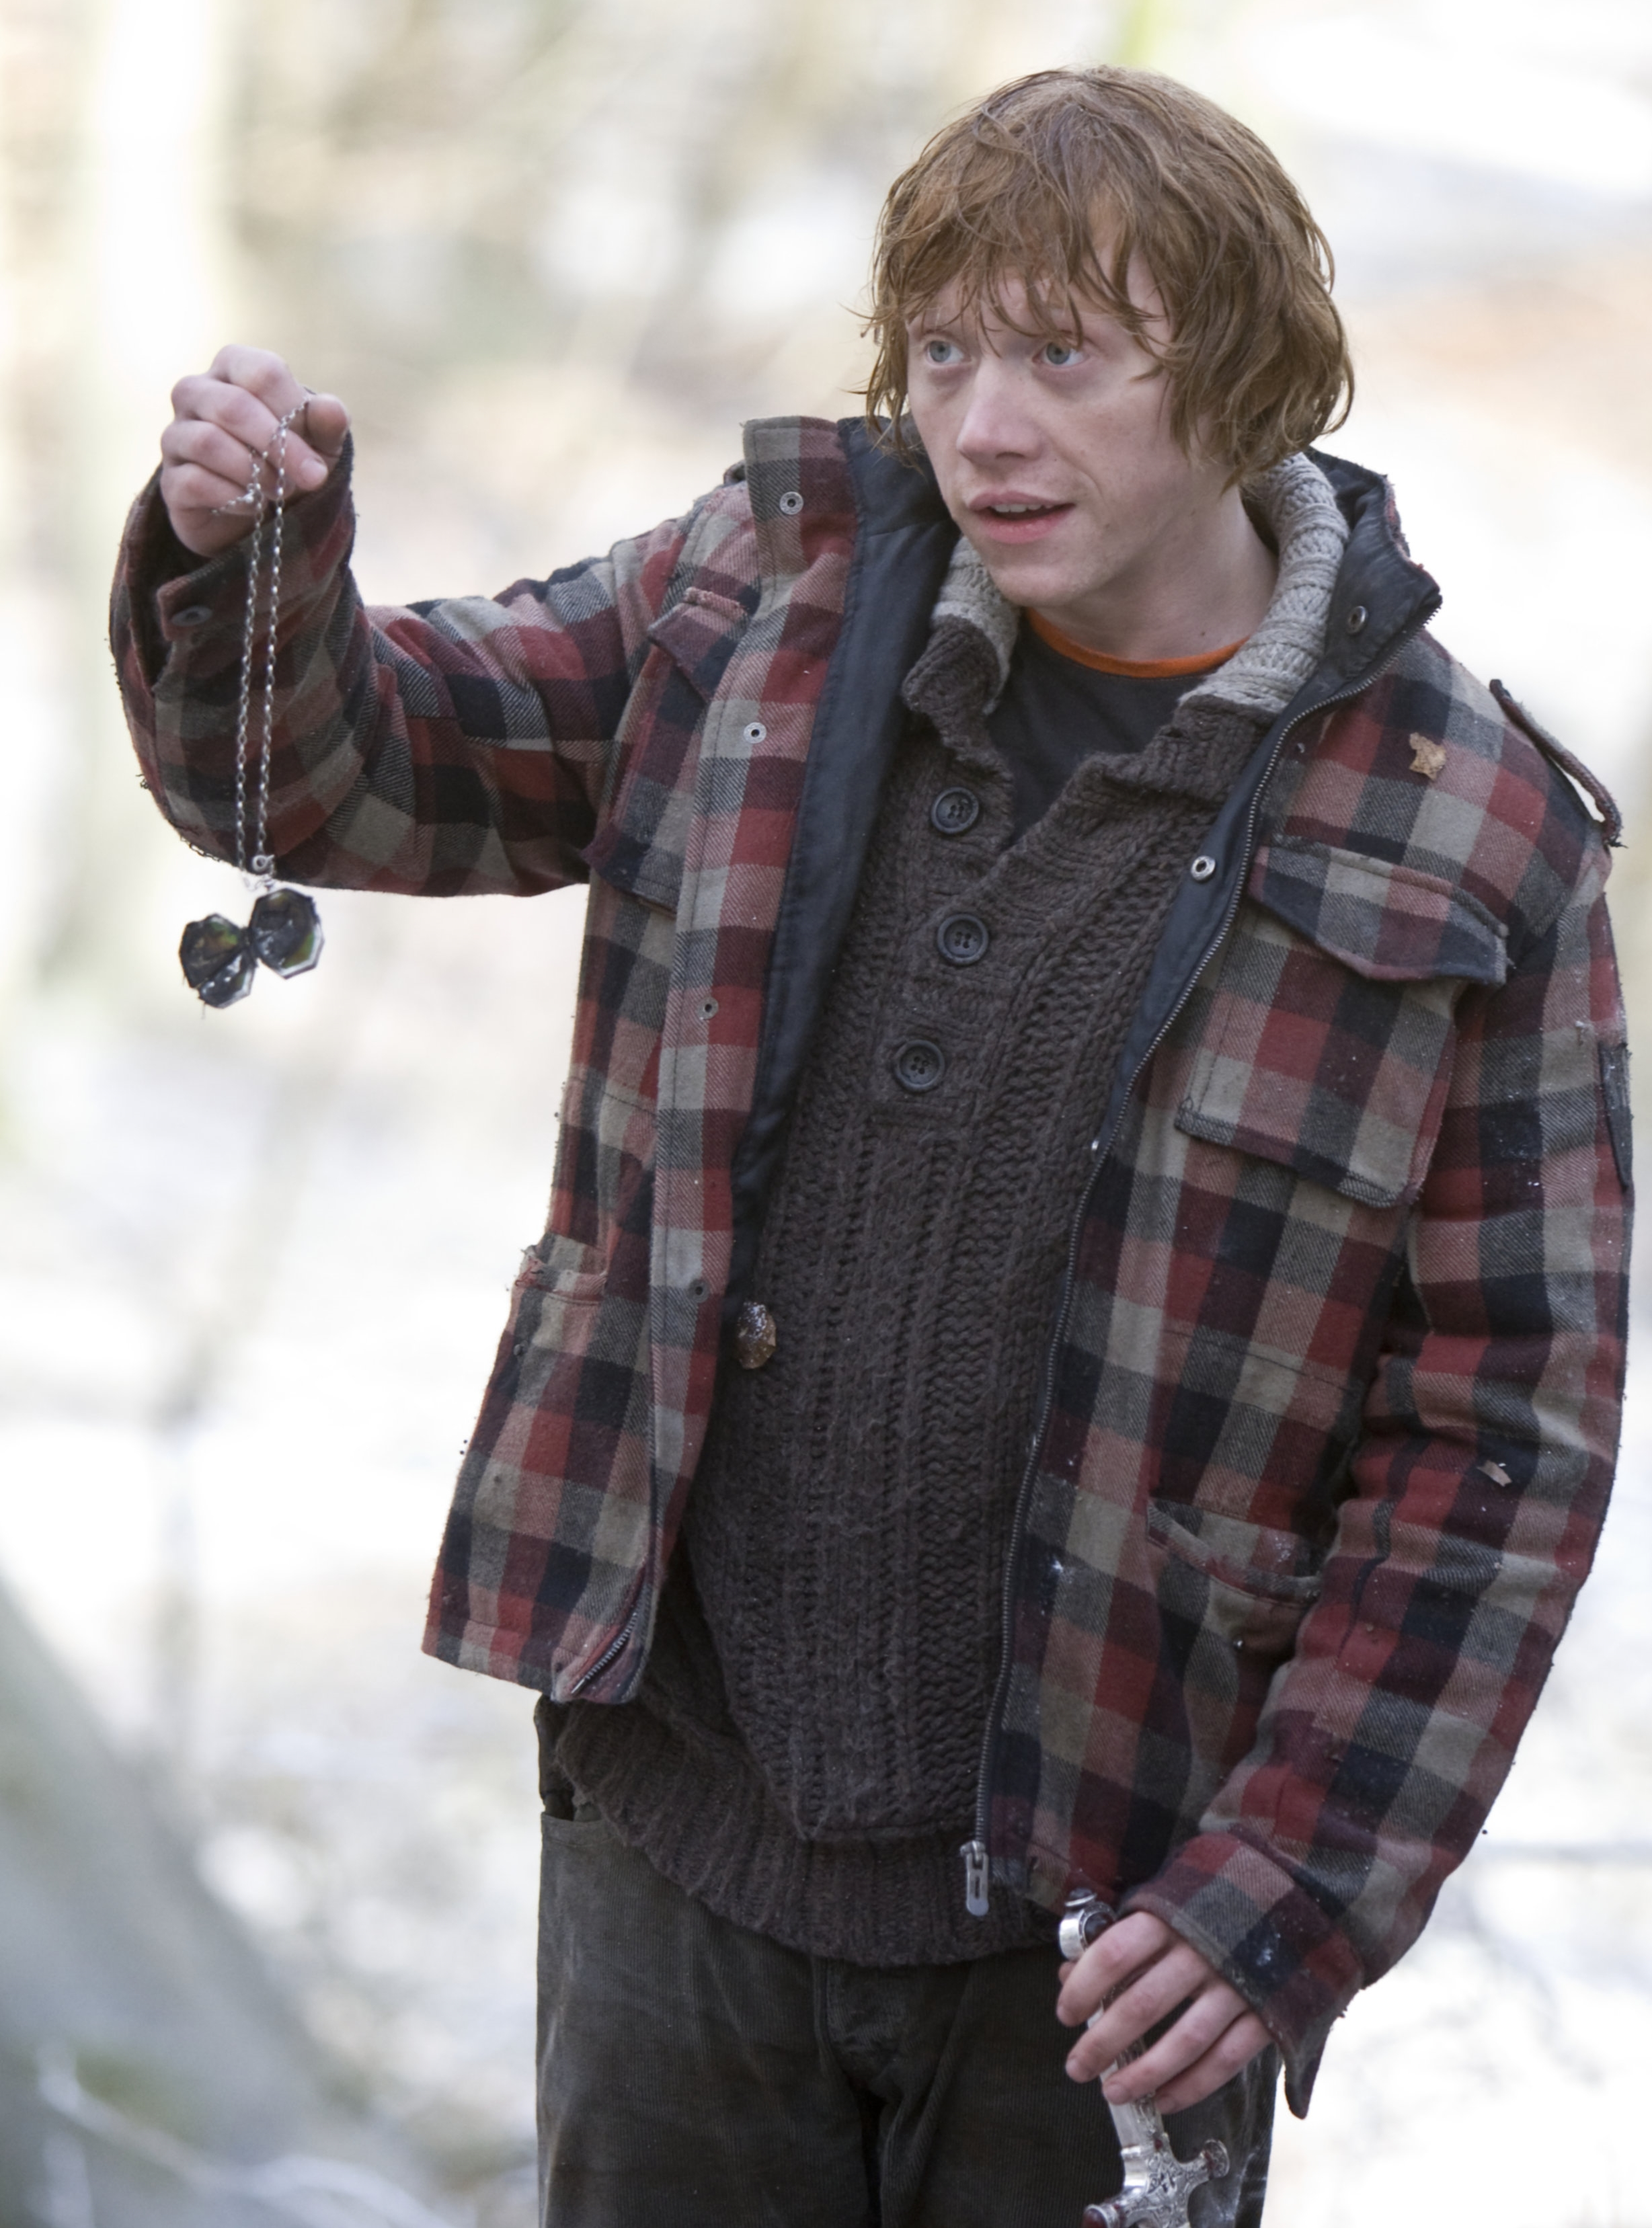 Ron holding up the destroyed locket Horcrux.